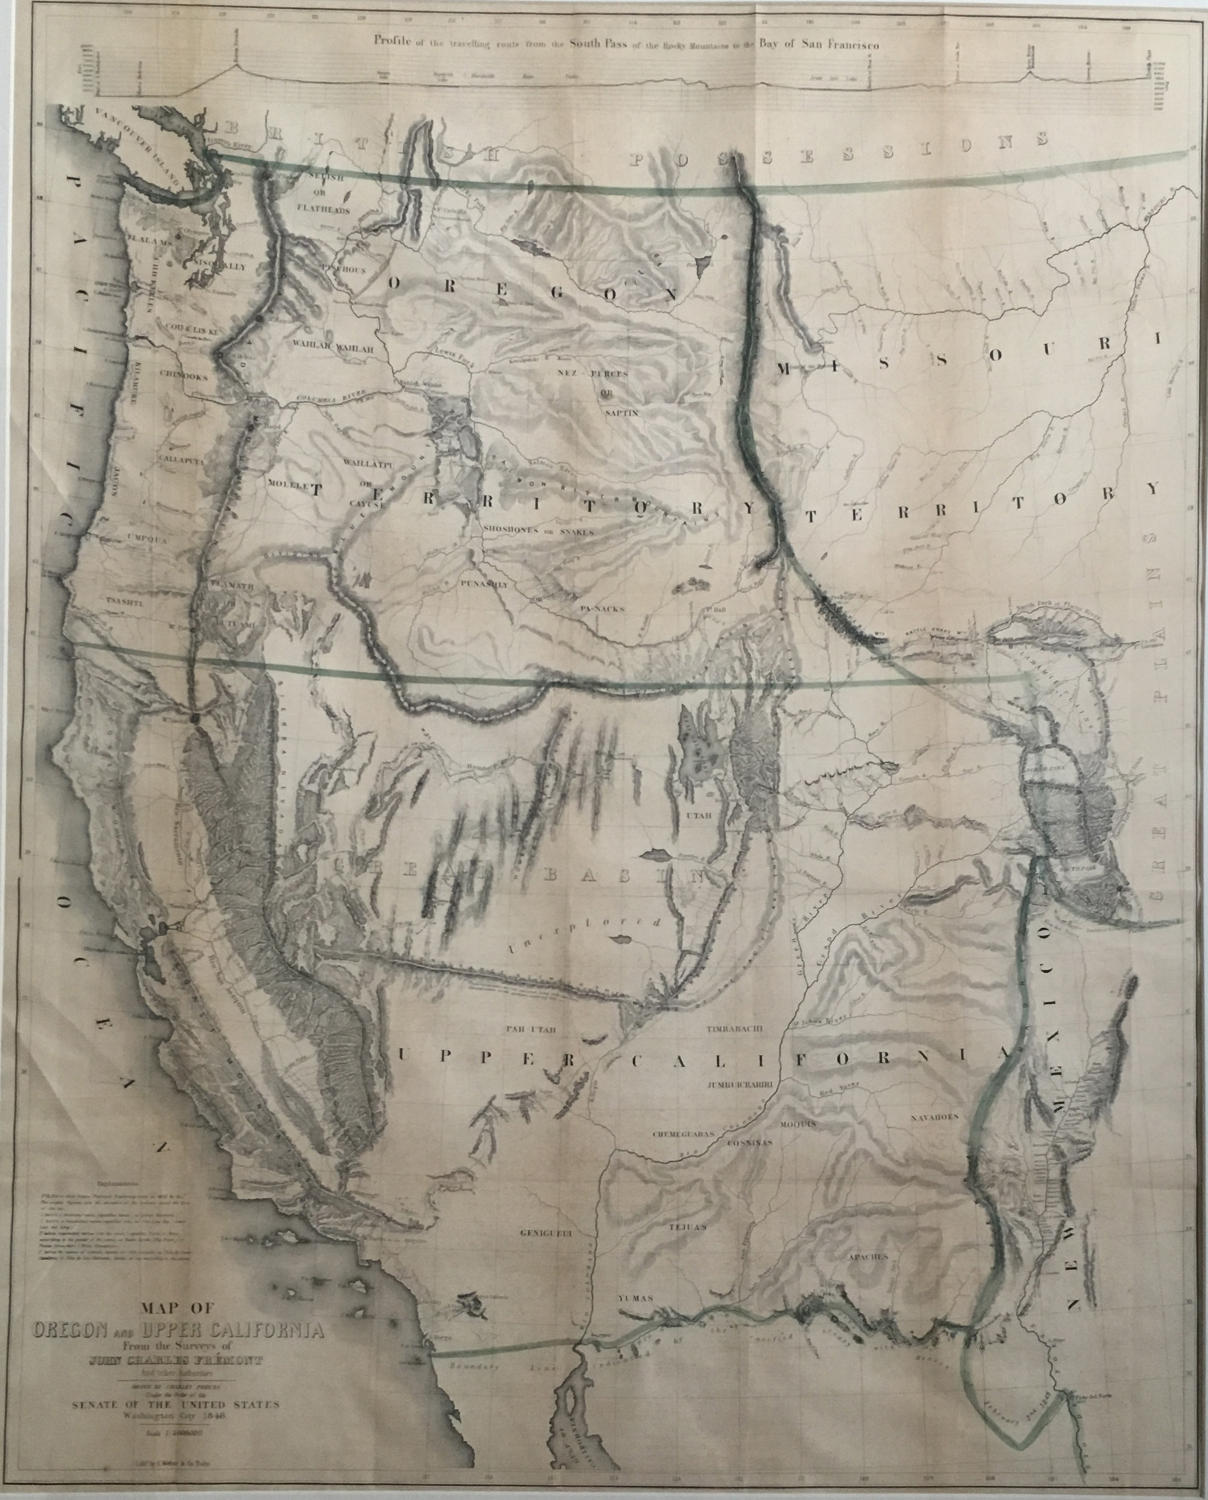 Fremont Map Of Oregon And Upper California In North America - Mapoforegon